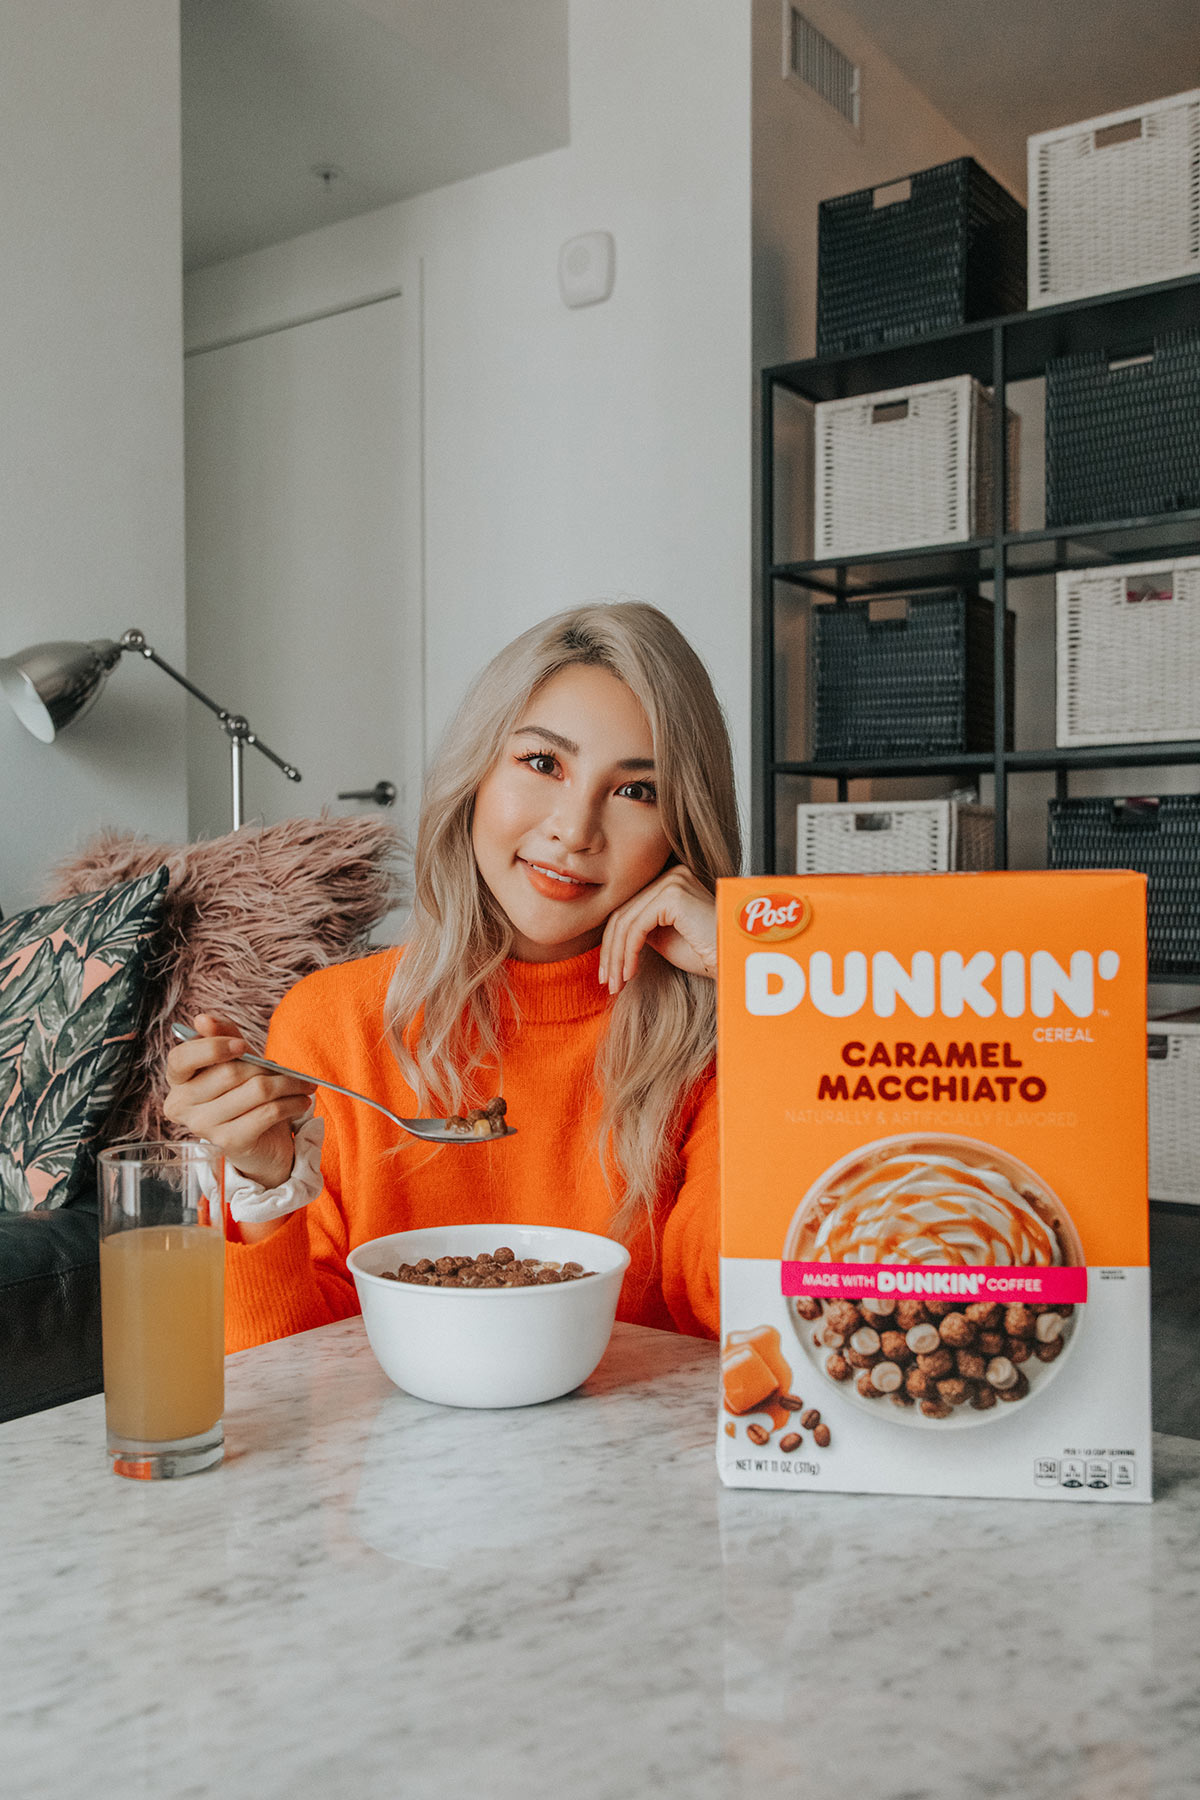 My Mornings with Post Dunkin' Cereal | Atsuna Matsui